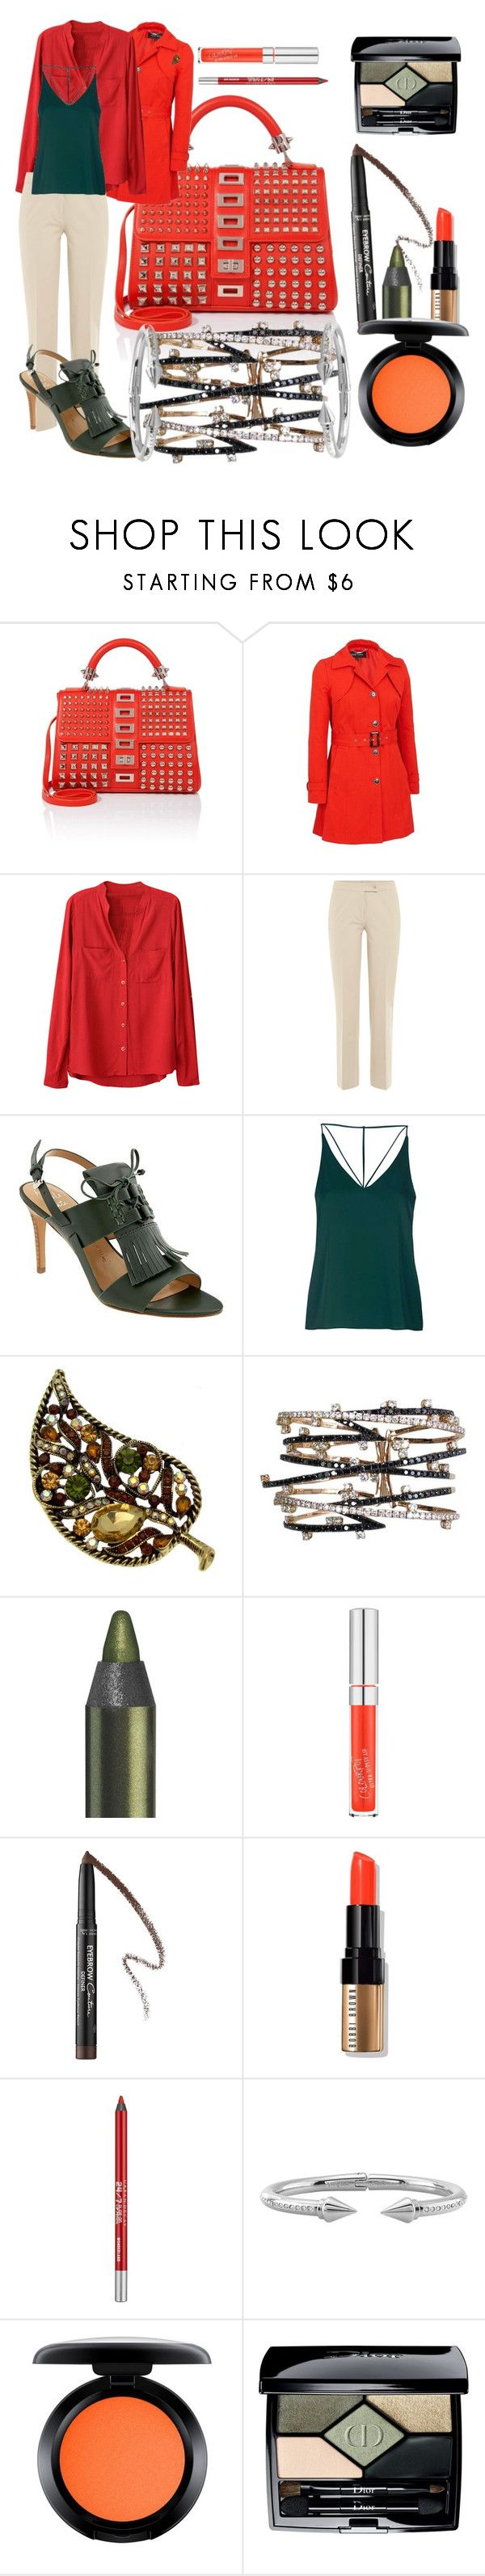 """Bright Response"" by bren-johnson ❤ liked on Polyvore featuring Etro, Banana Republic, Topshop, Givenchy, Bobbi Brown Cosmetics, Urban Decay, Vita Fede, MAC Cosmetics, Christian Dior and plus size clothing"